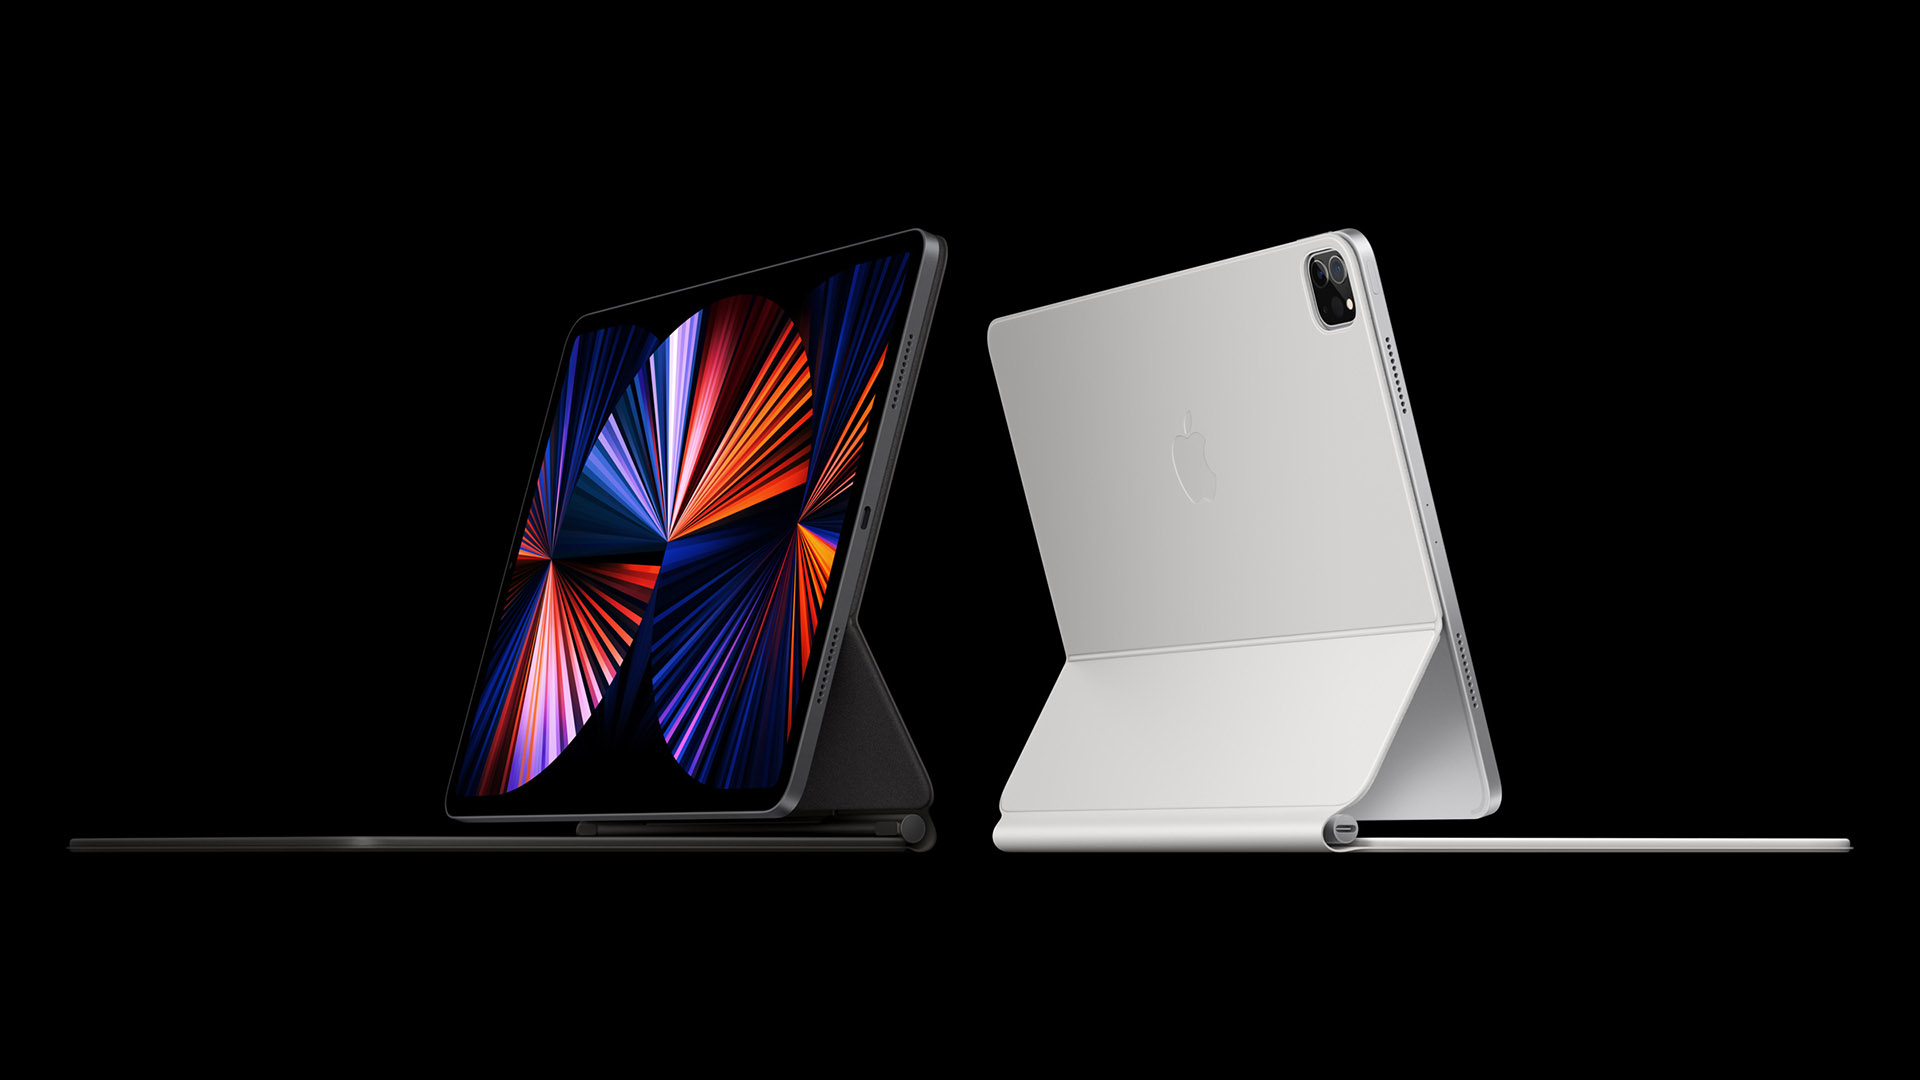 Without AppleCare+, It Will Cost You $699 to Repair the 12.9-inch 2021 iPad Pro - Wccftech